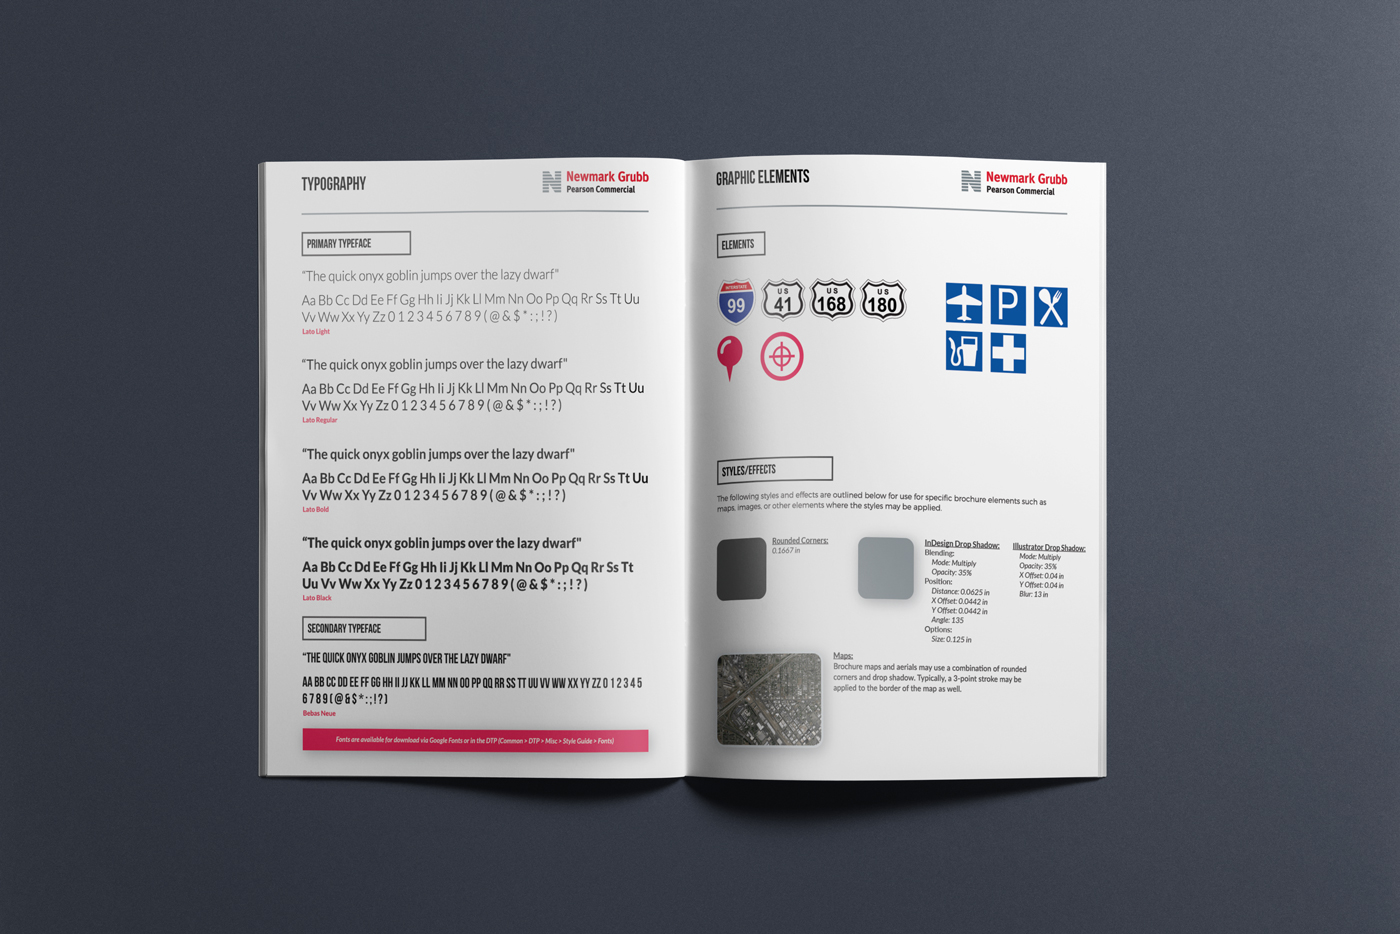 ngpc-style-guide-behance-04.jpg